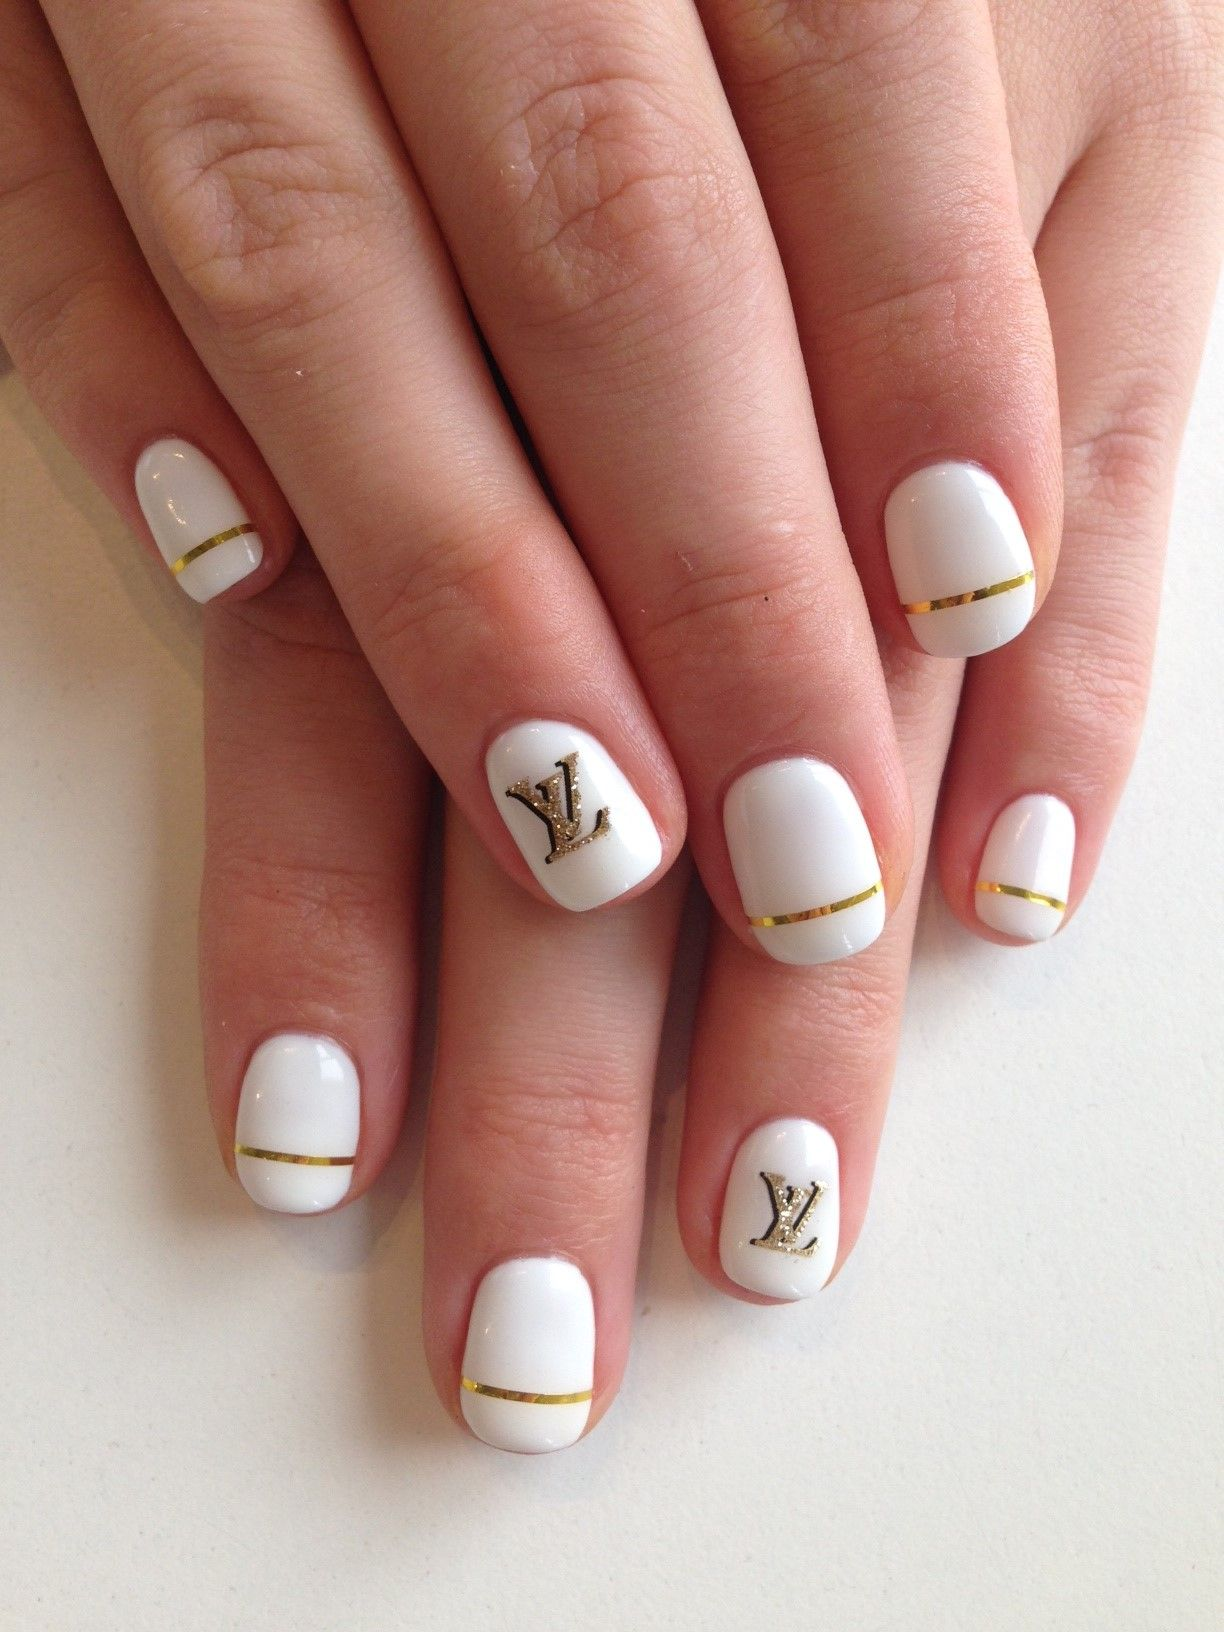 White nails in Bio Sculpture Gel colour: #3 - Snow White with LV ...